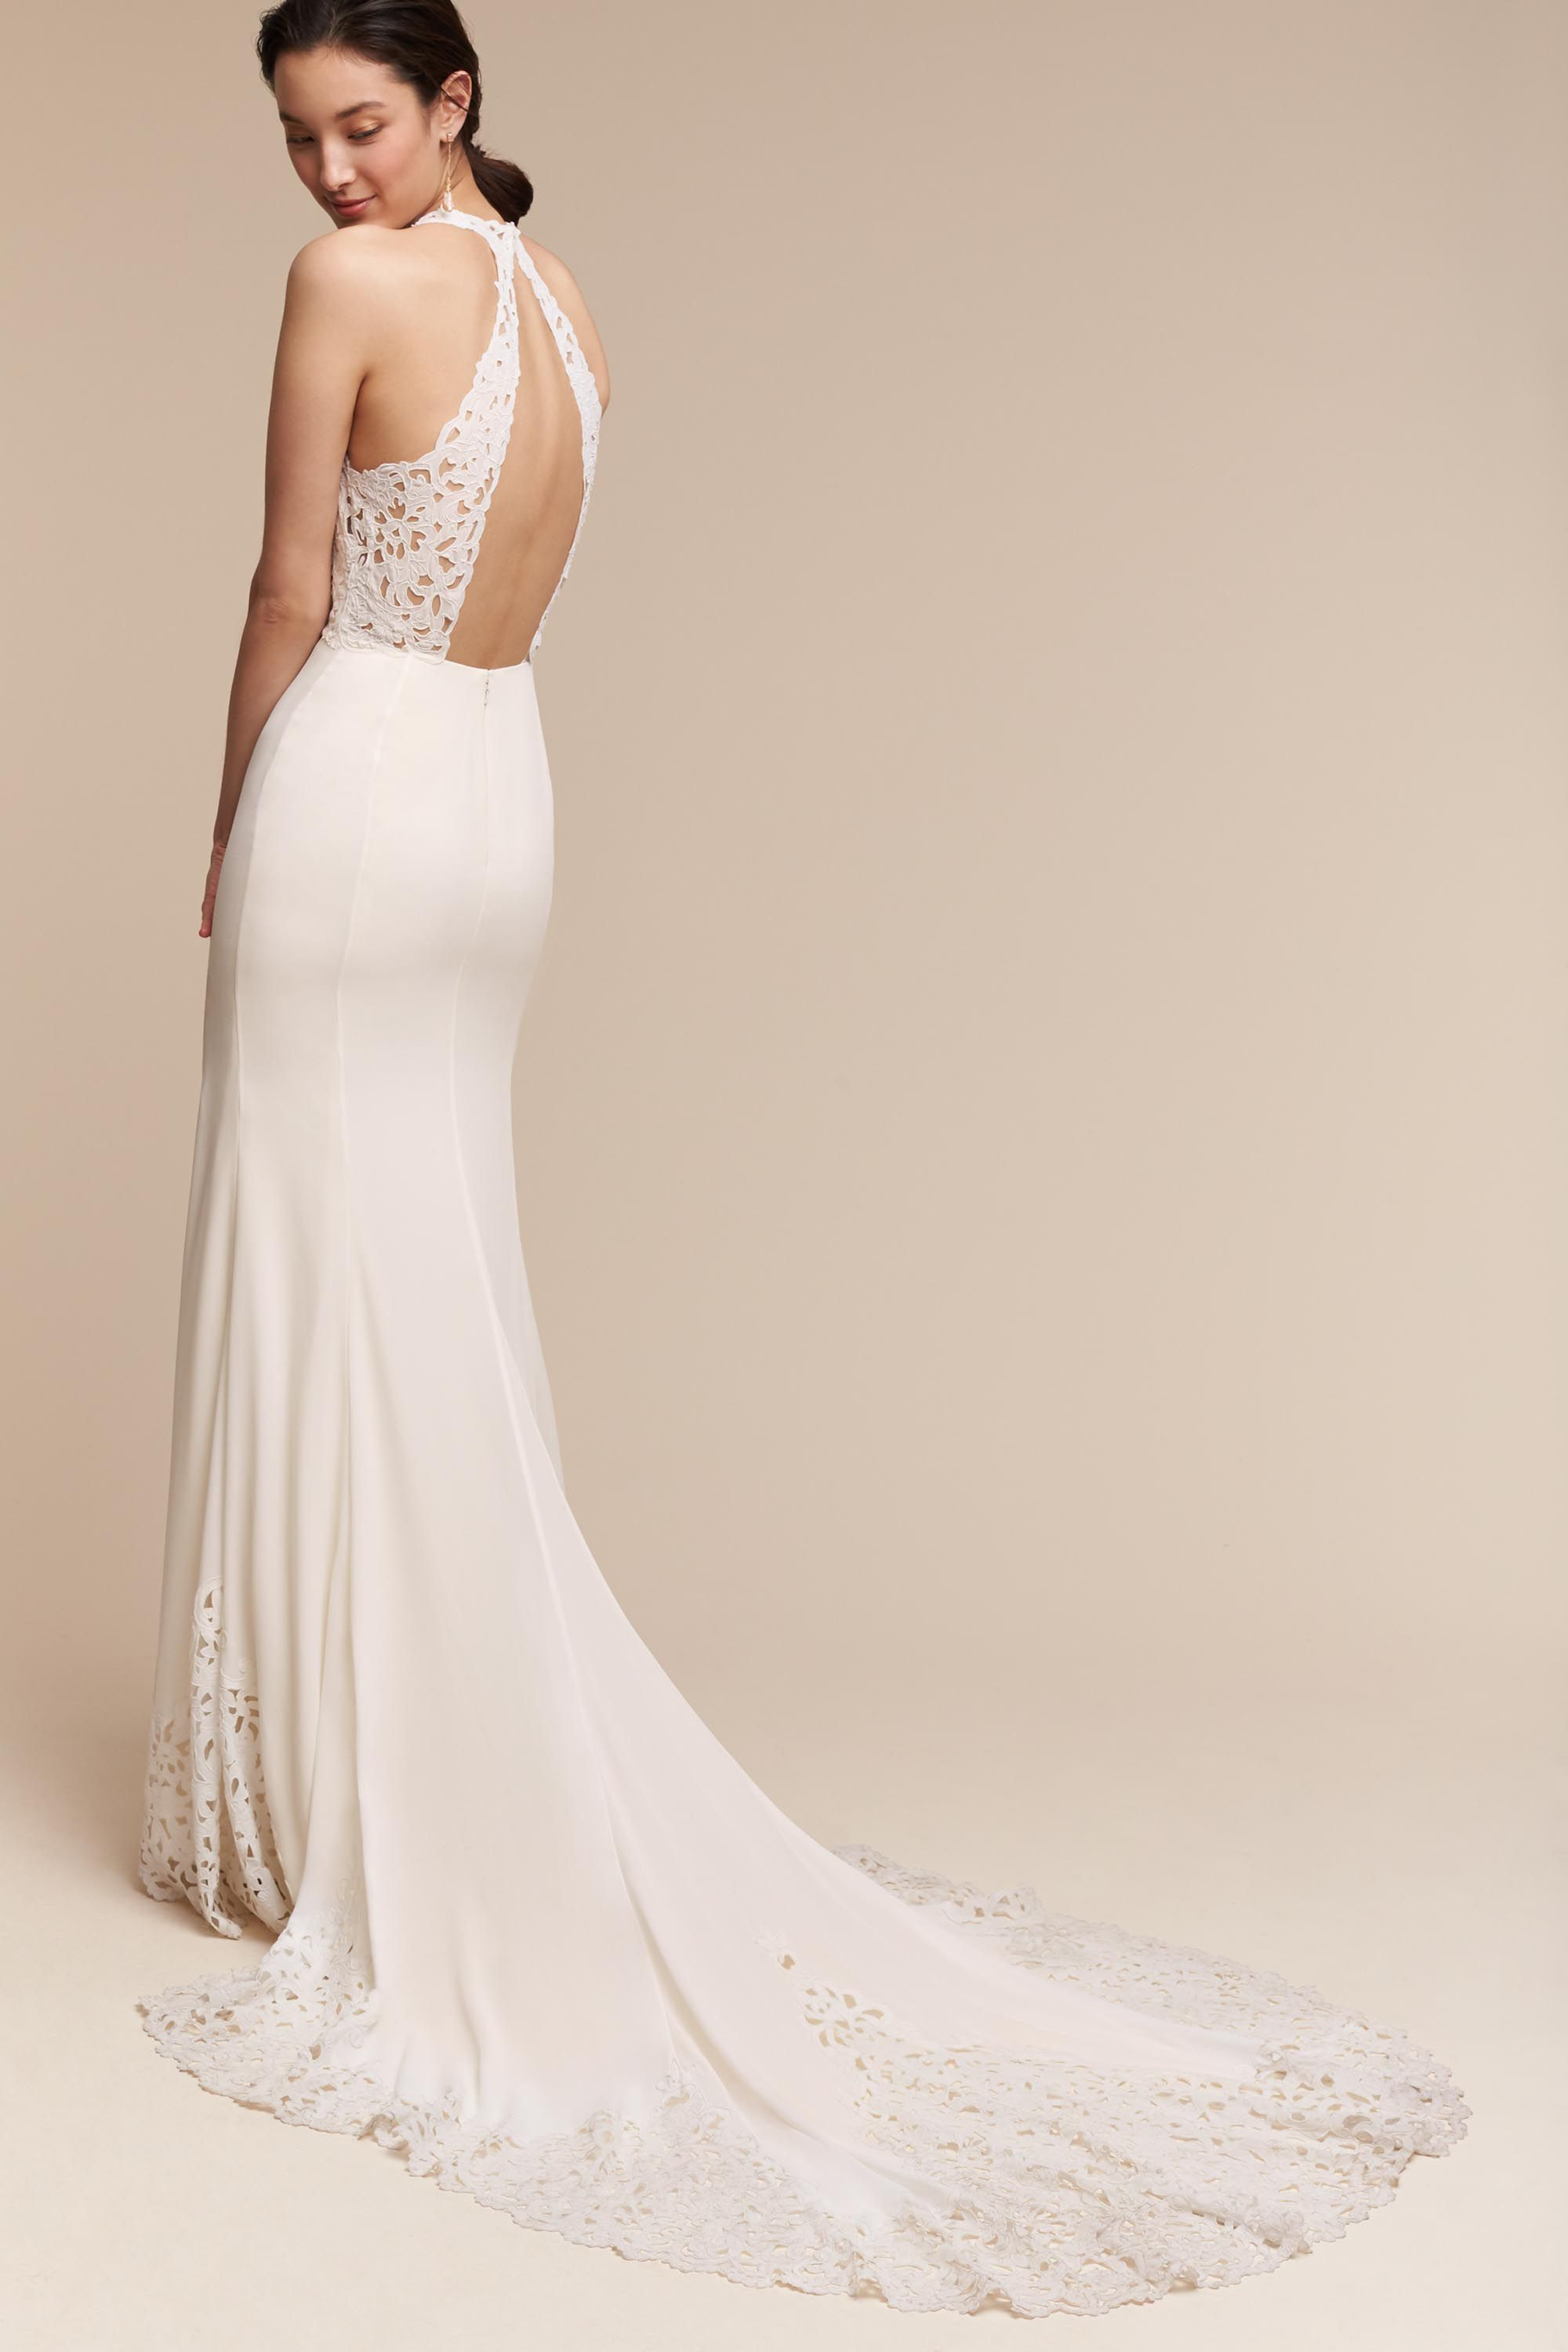 Where to Buy BHLDN Wedding Dresses in Store Online Emmaline Bride